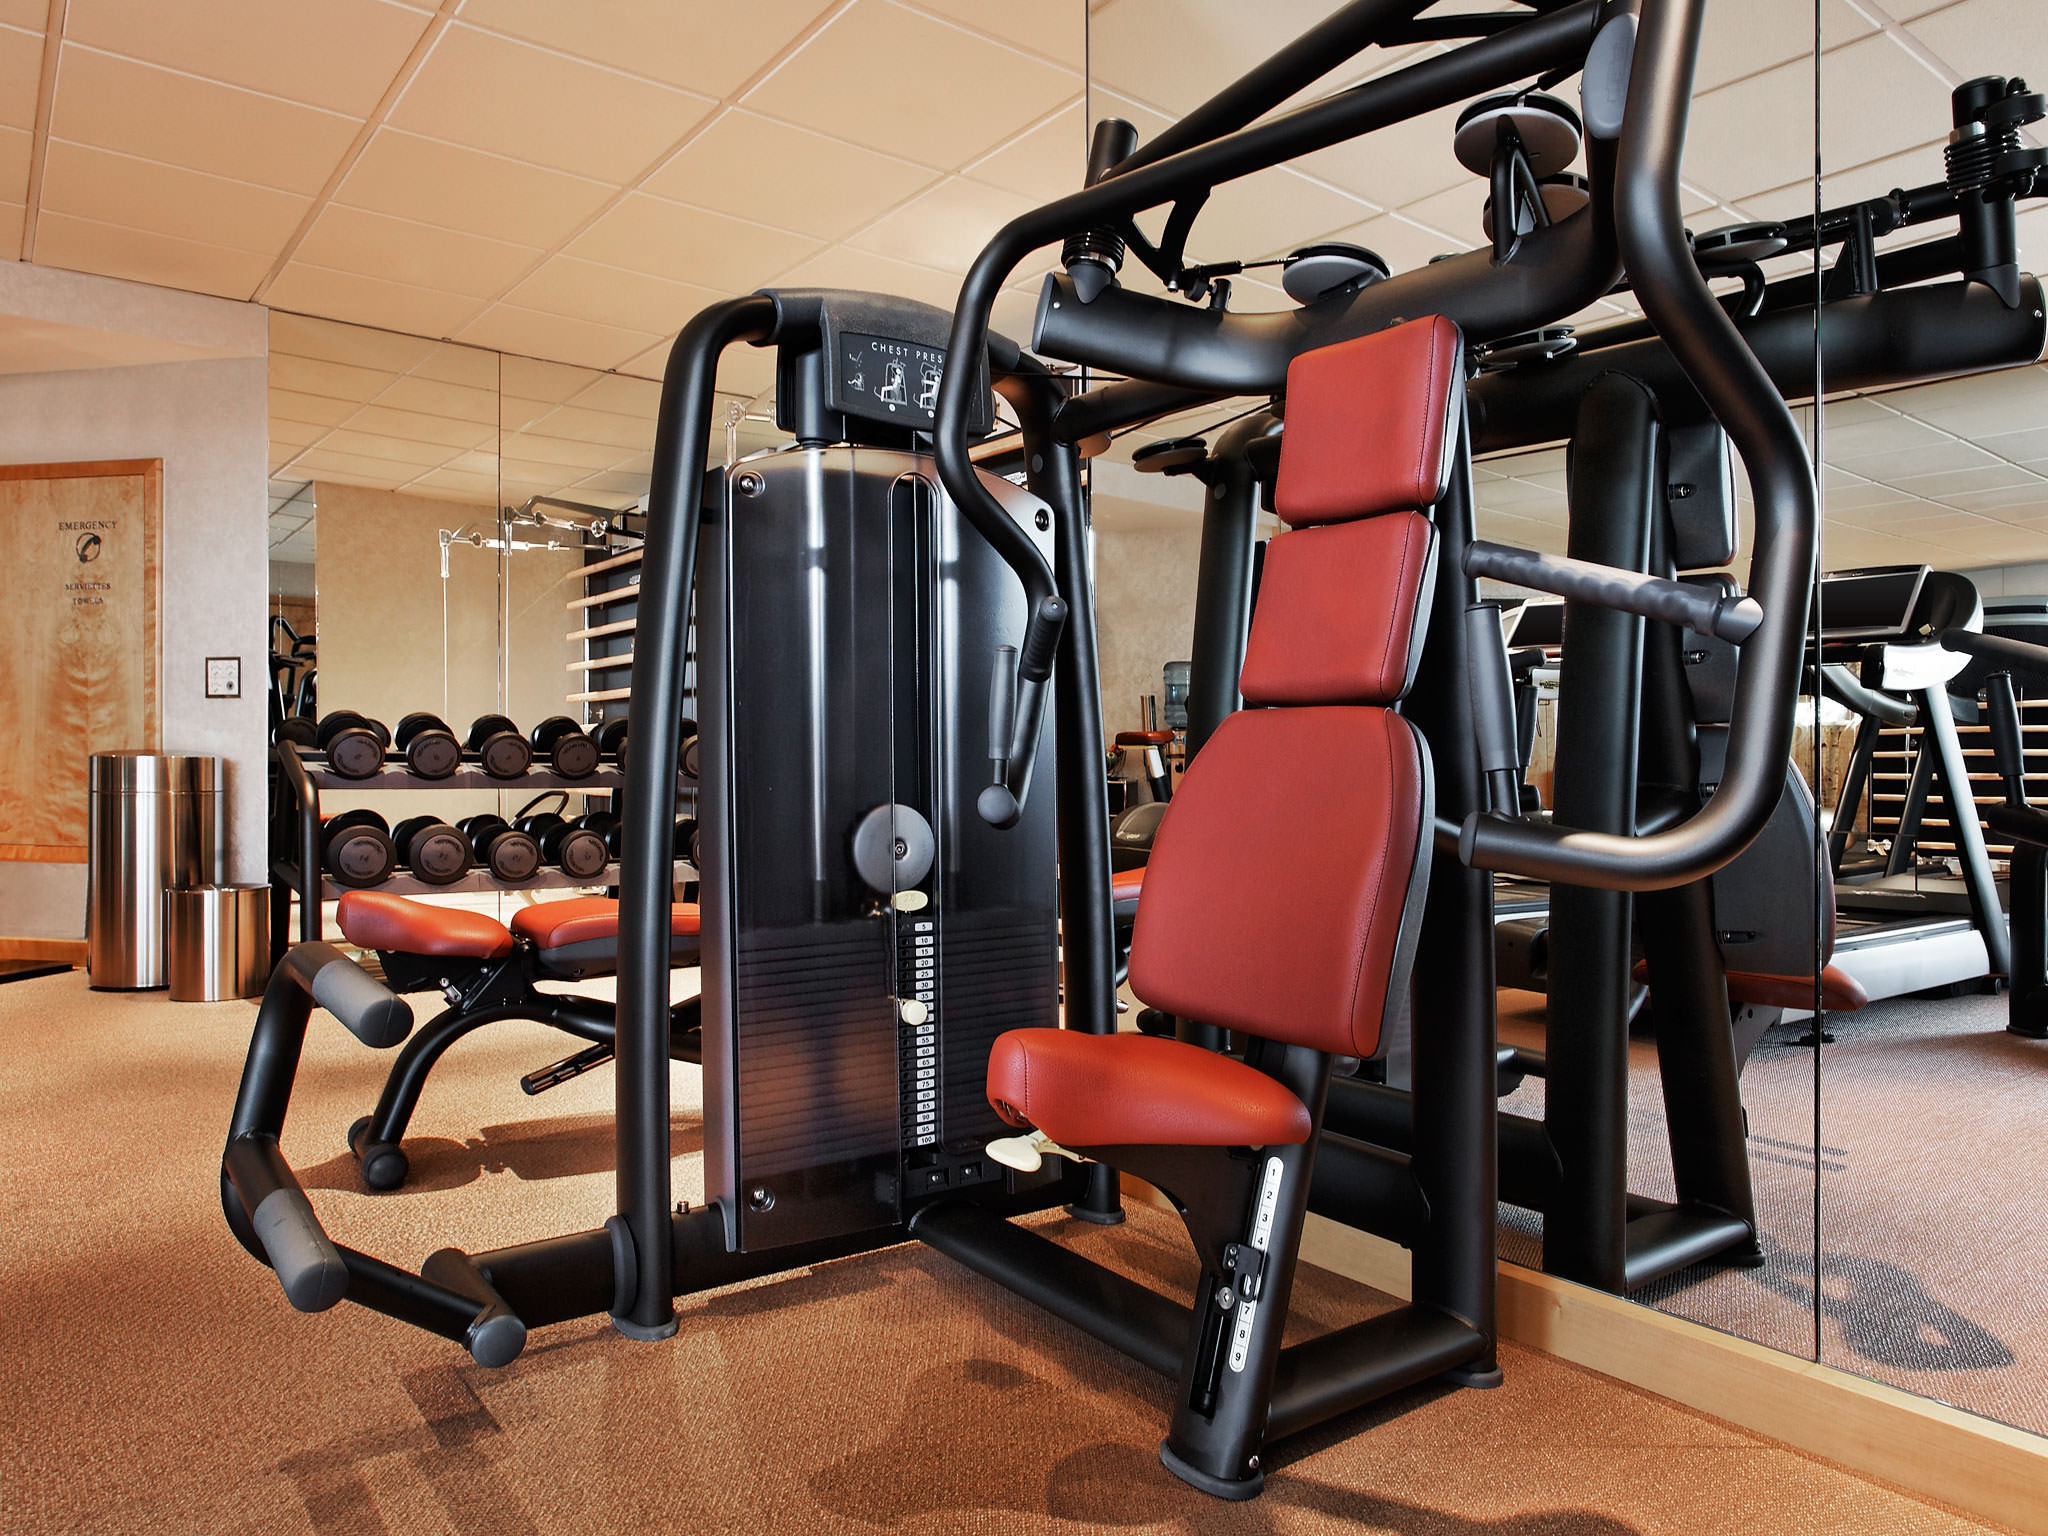 Luxury Hotel President Wilson, Geneva - Fitness Center